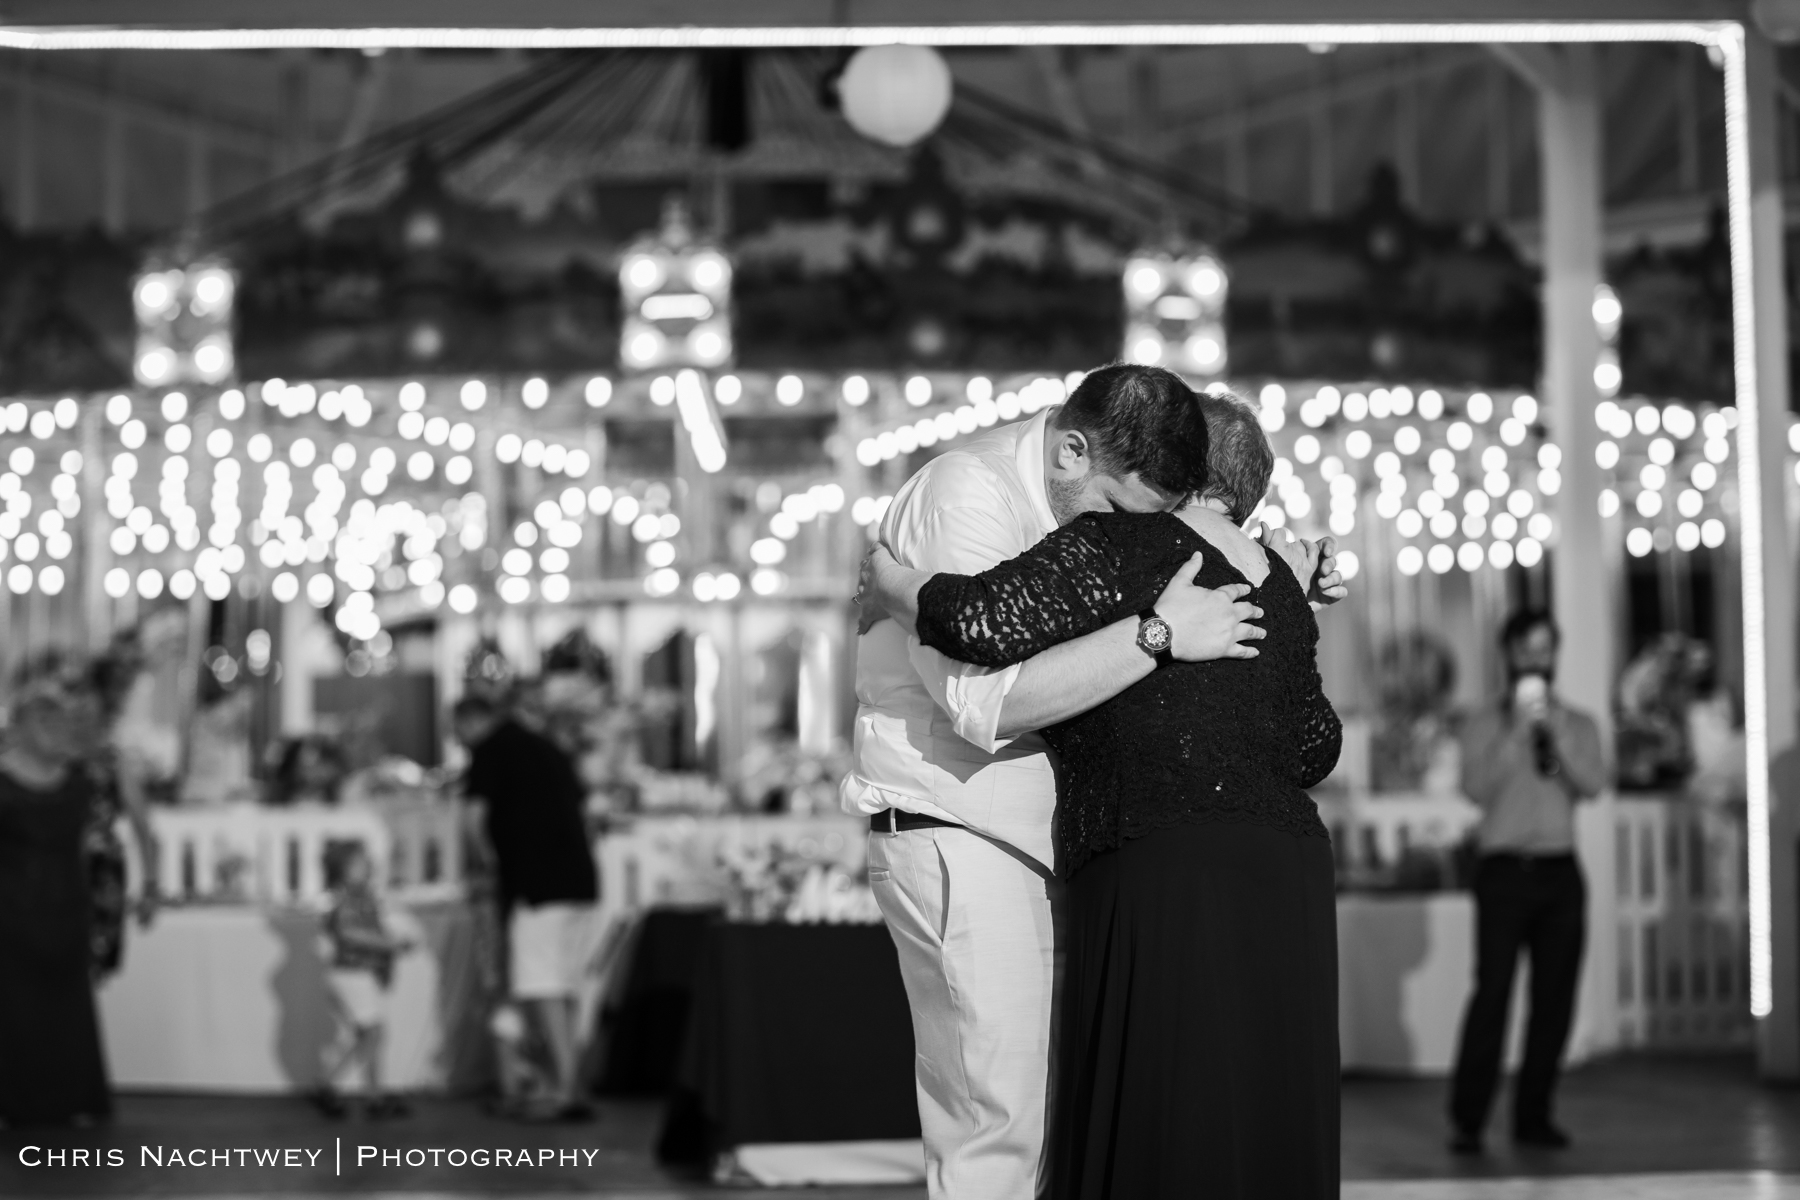 photos-wedding-lighthouse-point-park-carousel-new-haven-chris-nachtwey-photography-2019-60.jpg